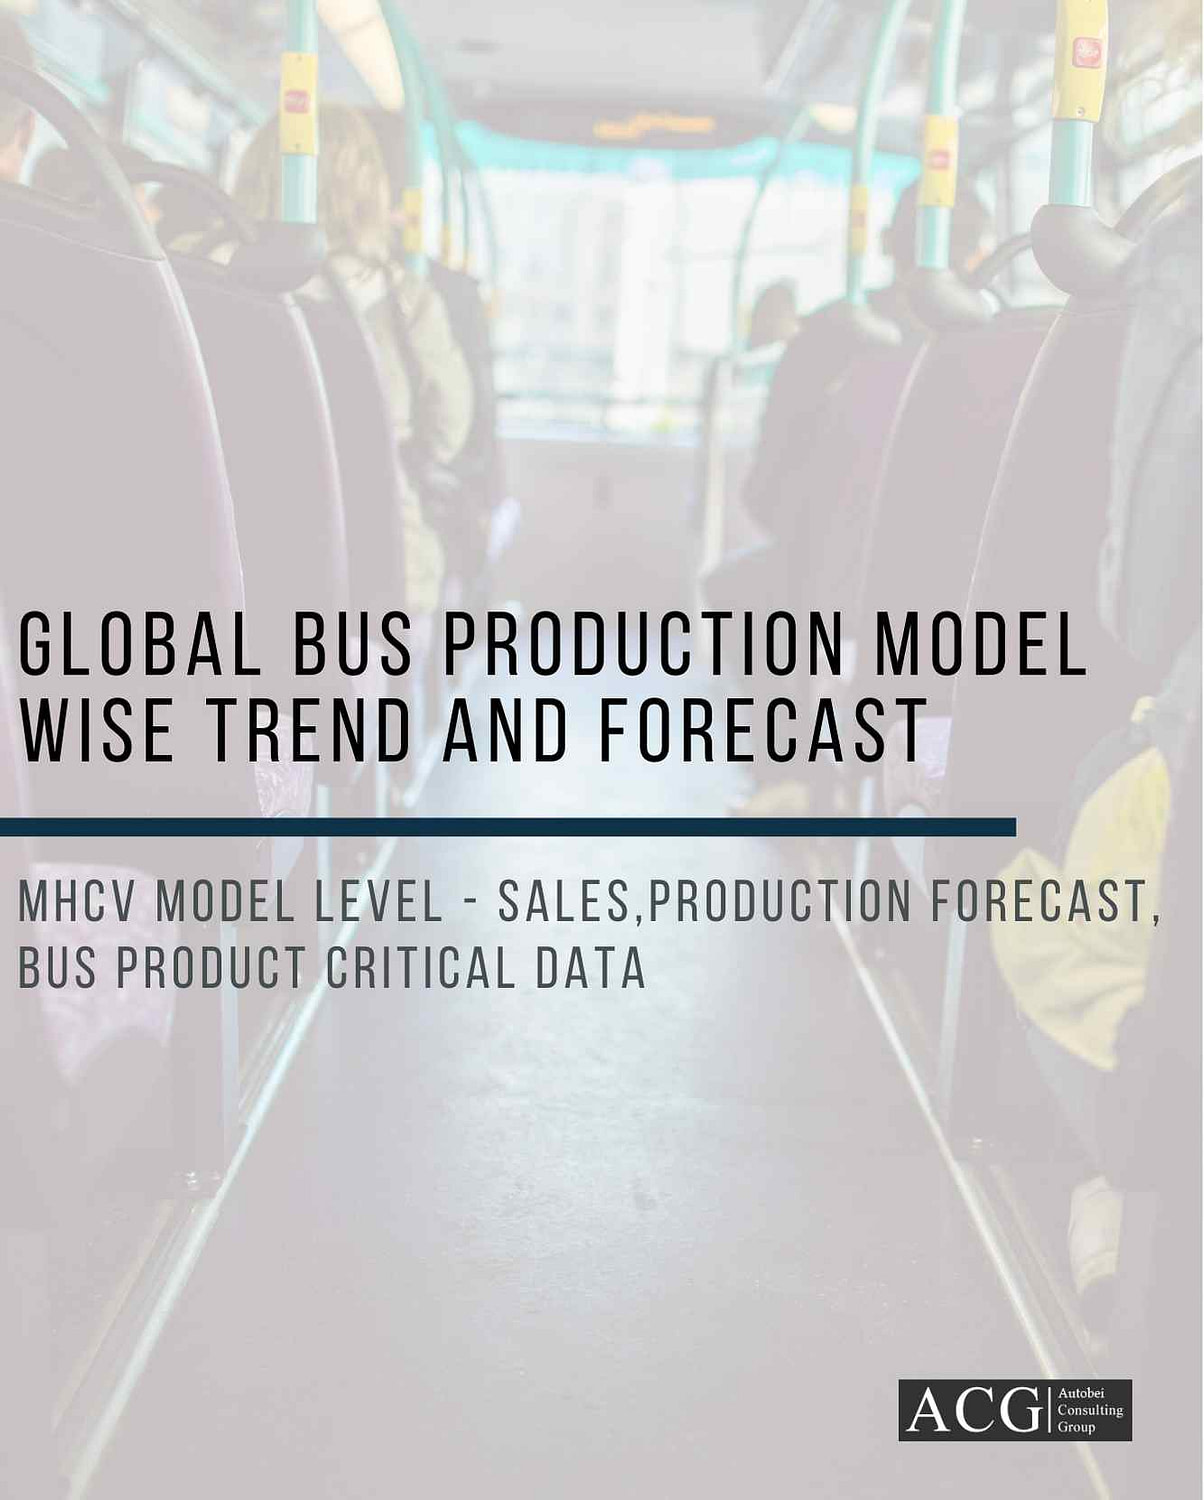 Global Bus Production model wise trend and forecast